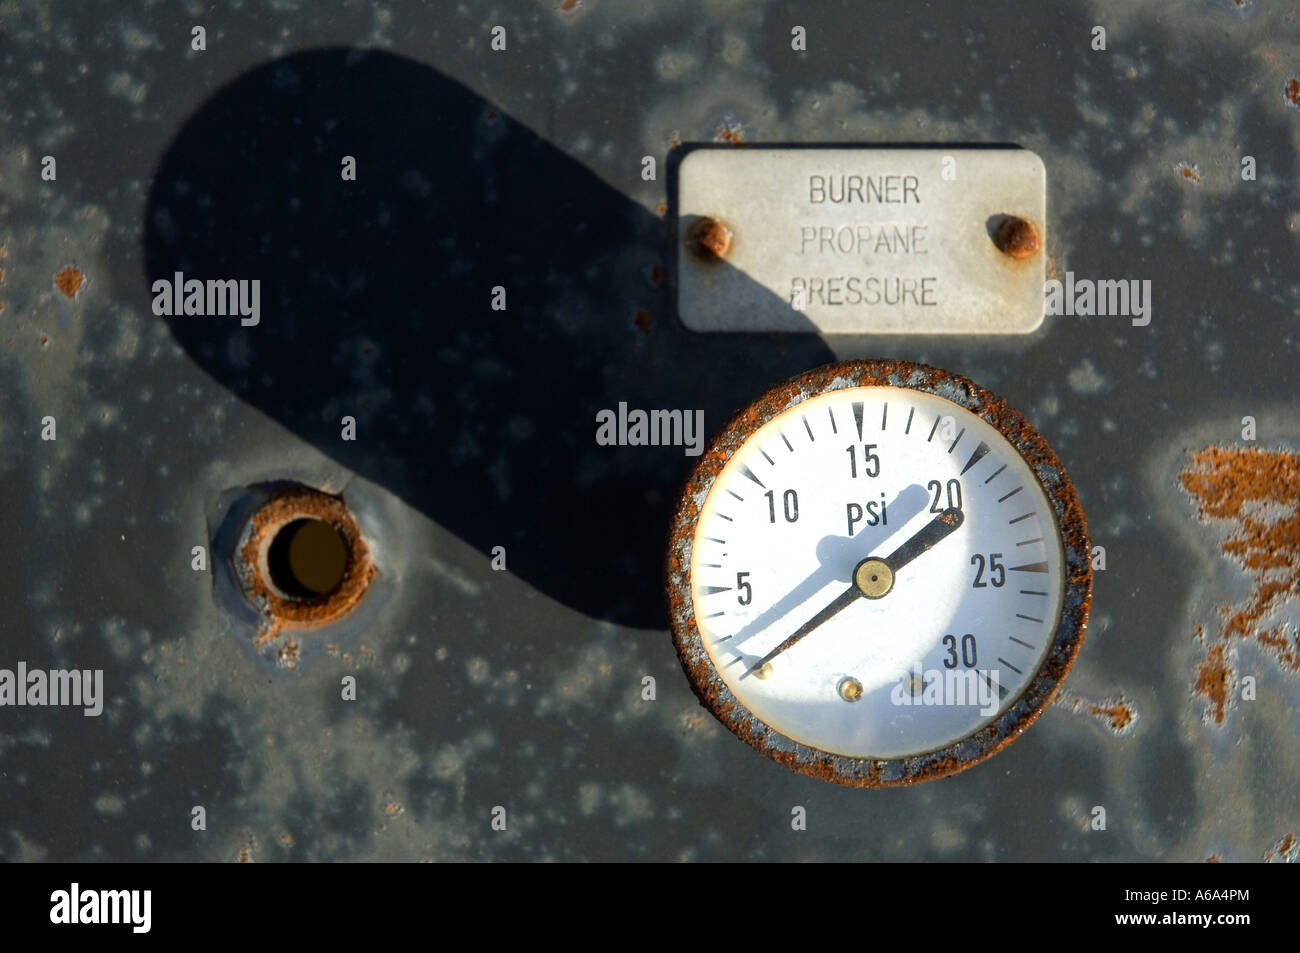 Detail of the control panel for a tank car at a railyard; full description below. - Stock Image